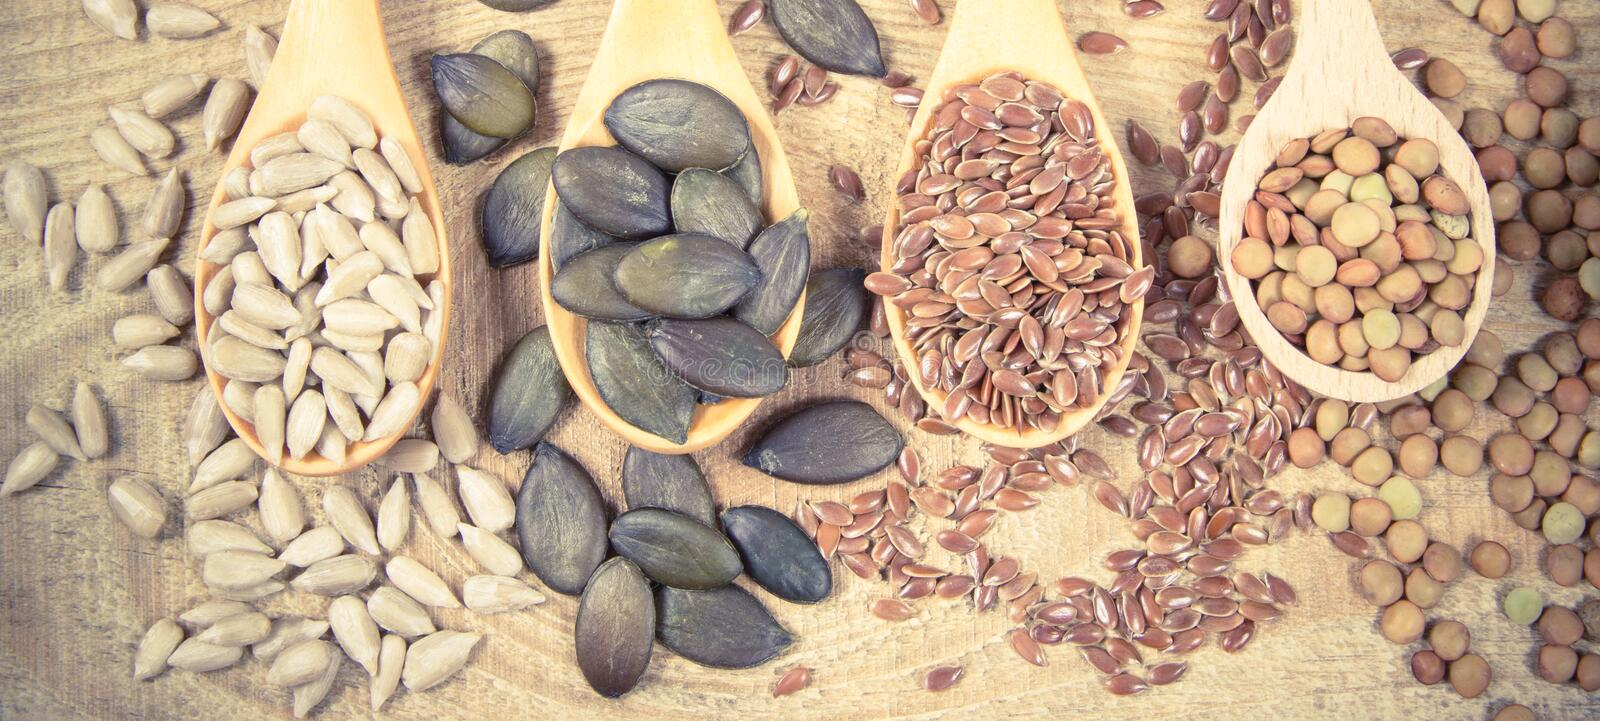 Flaxseed, pumpkin, raisins, lentils and sunflower seeds in wooden spoons. Seeds - a concept of healthy food additives royalty free stock photography